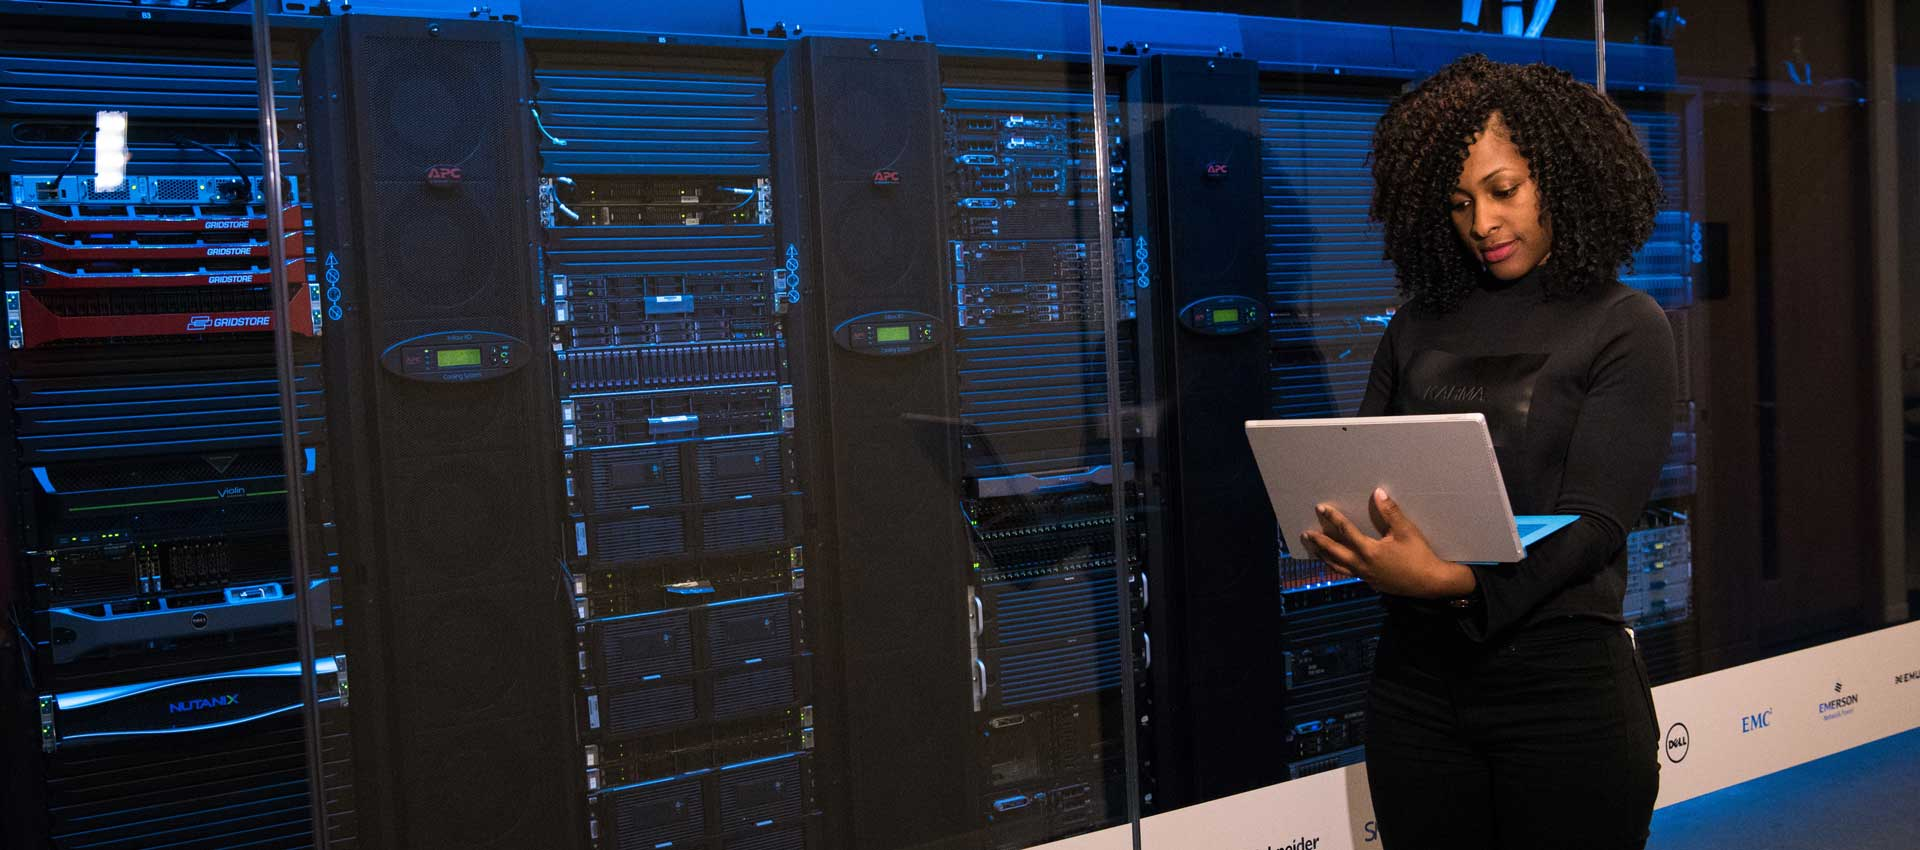 The-Benefits-of-Ionisation-In-Server-Rooms